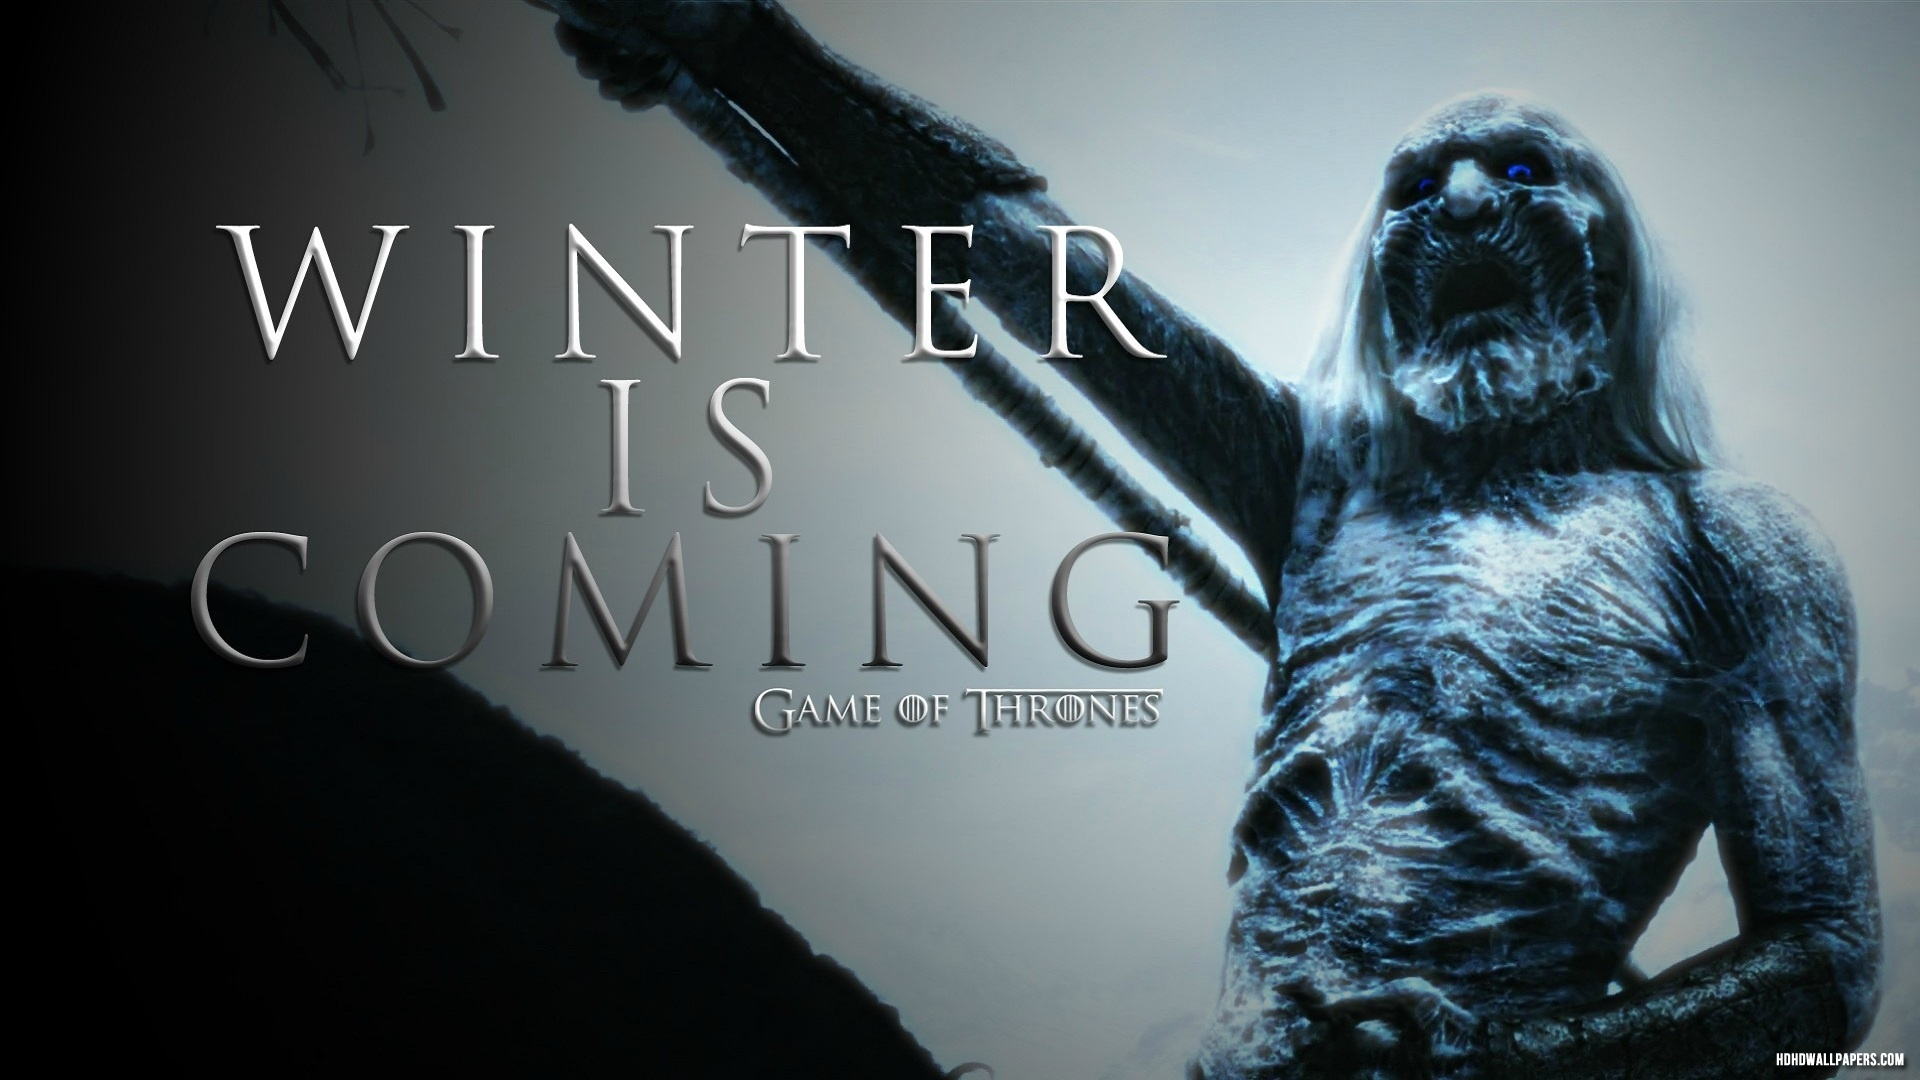 EPISODE 16: WINTER IS COMING